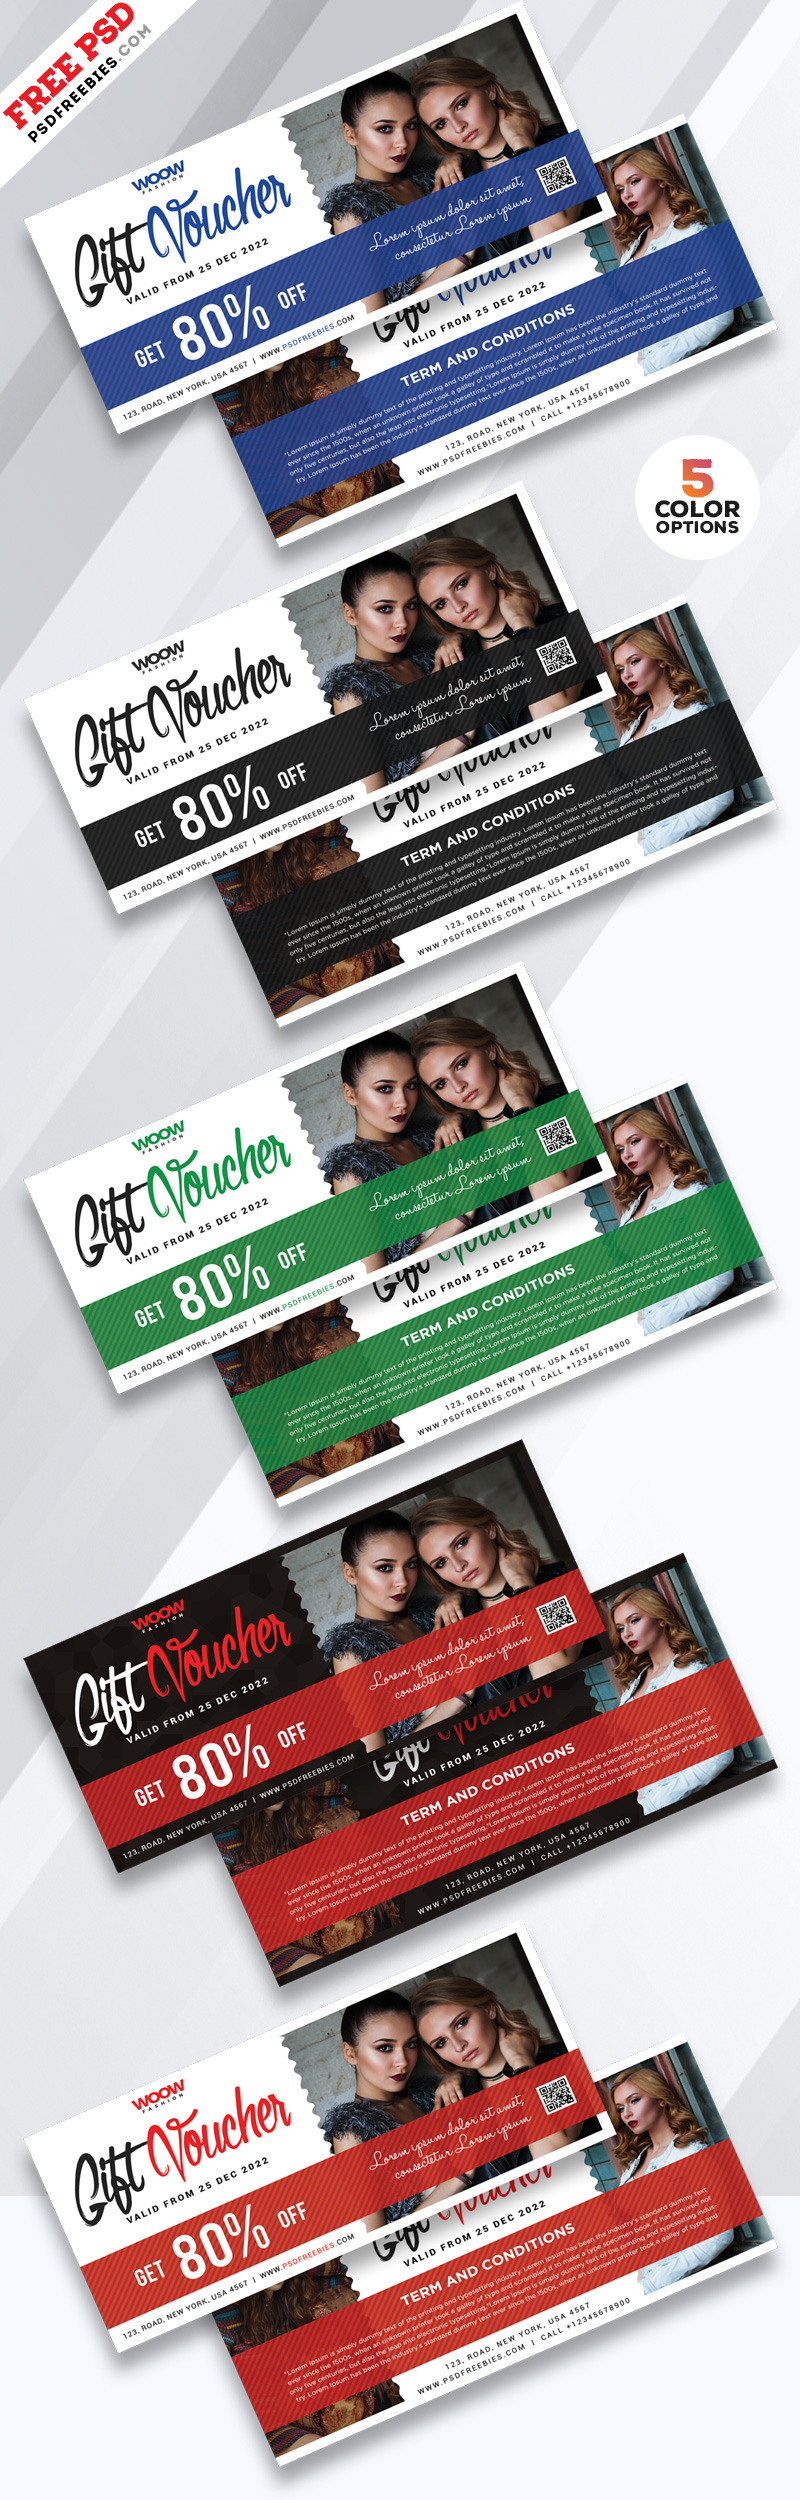 Gift Voucher Design Free PSD Bundle